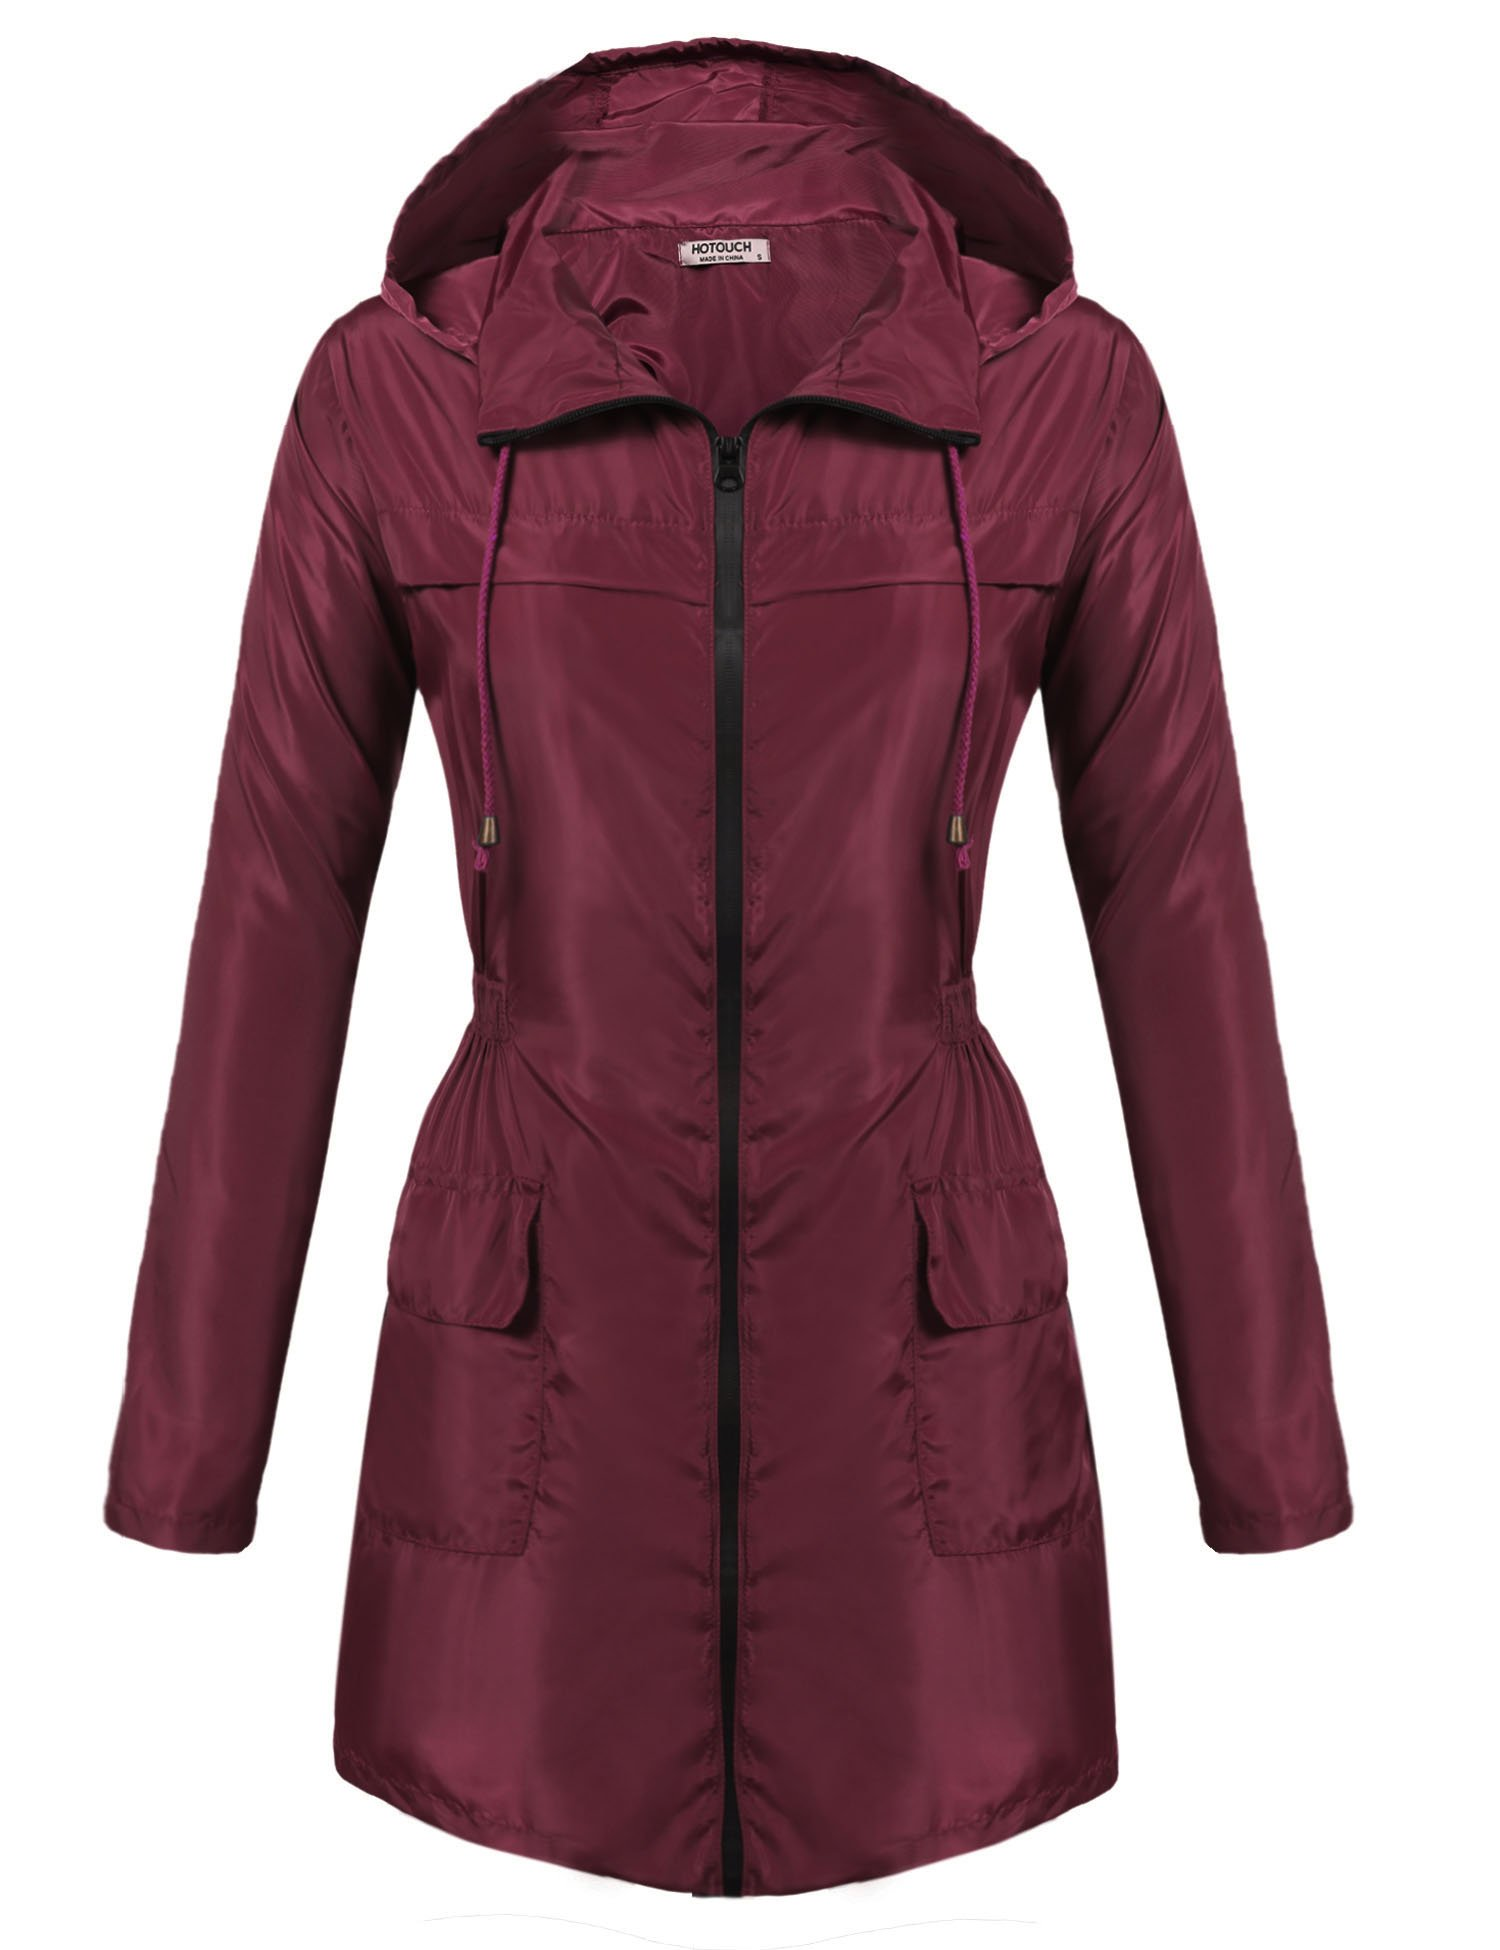 HOTOUCH Women's Lightweight Hooded Raincoat Waterproof Packable Active Outdoor Rain Jacket Wine Red L